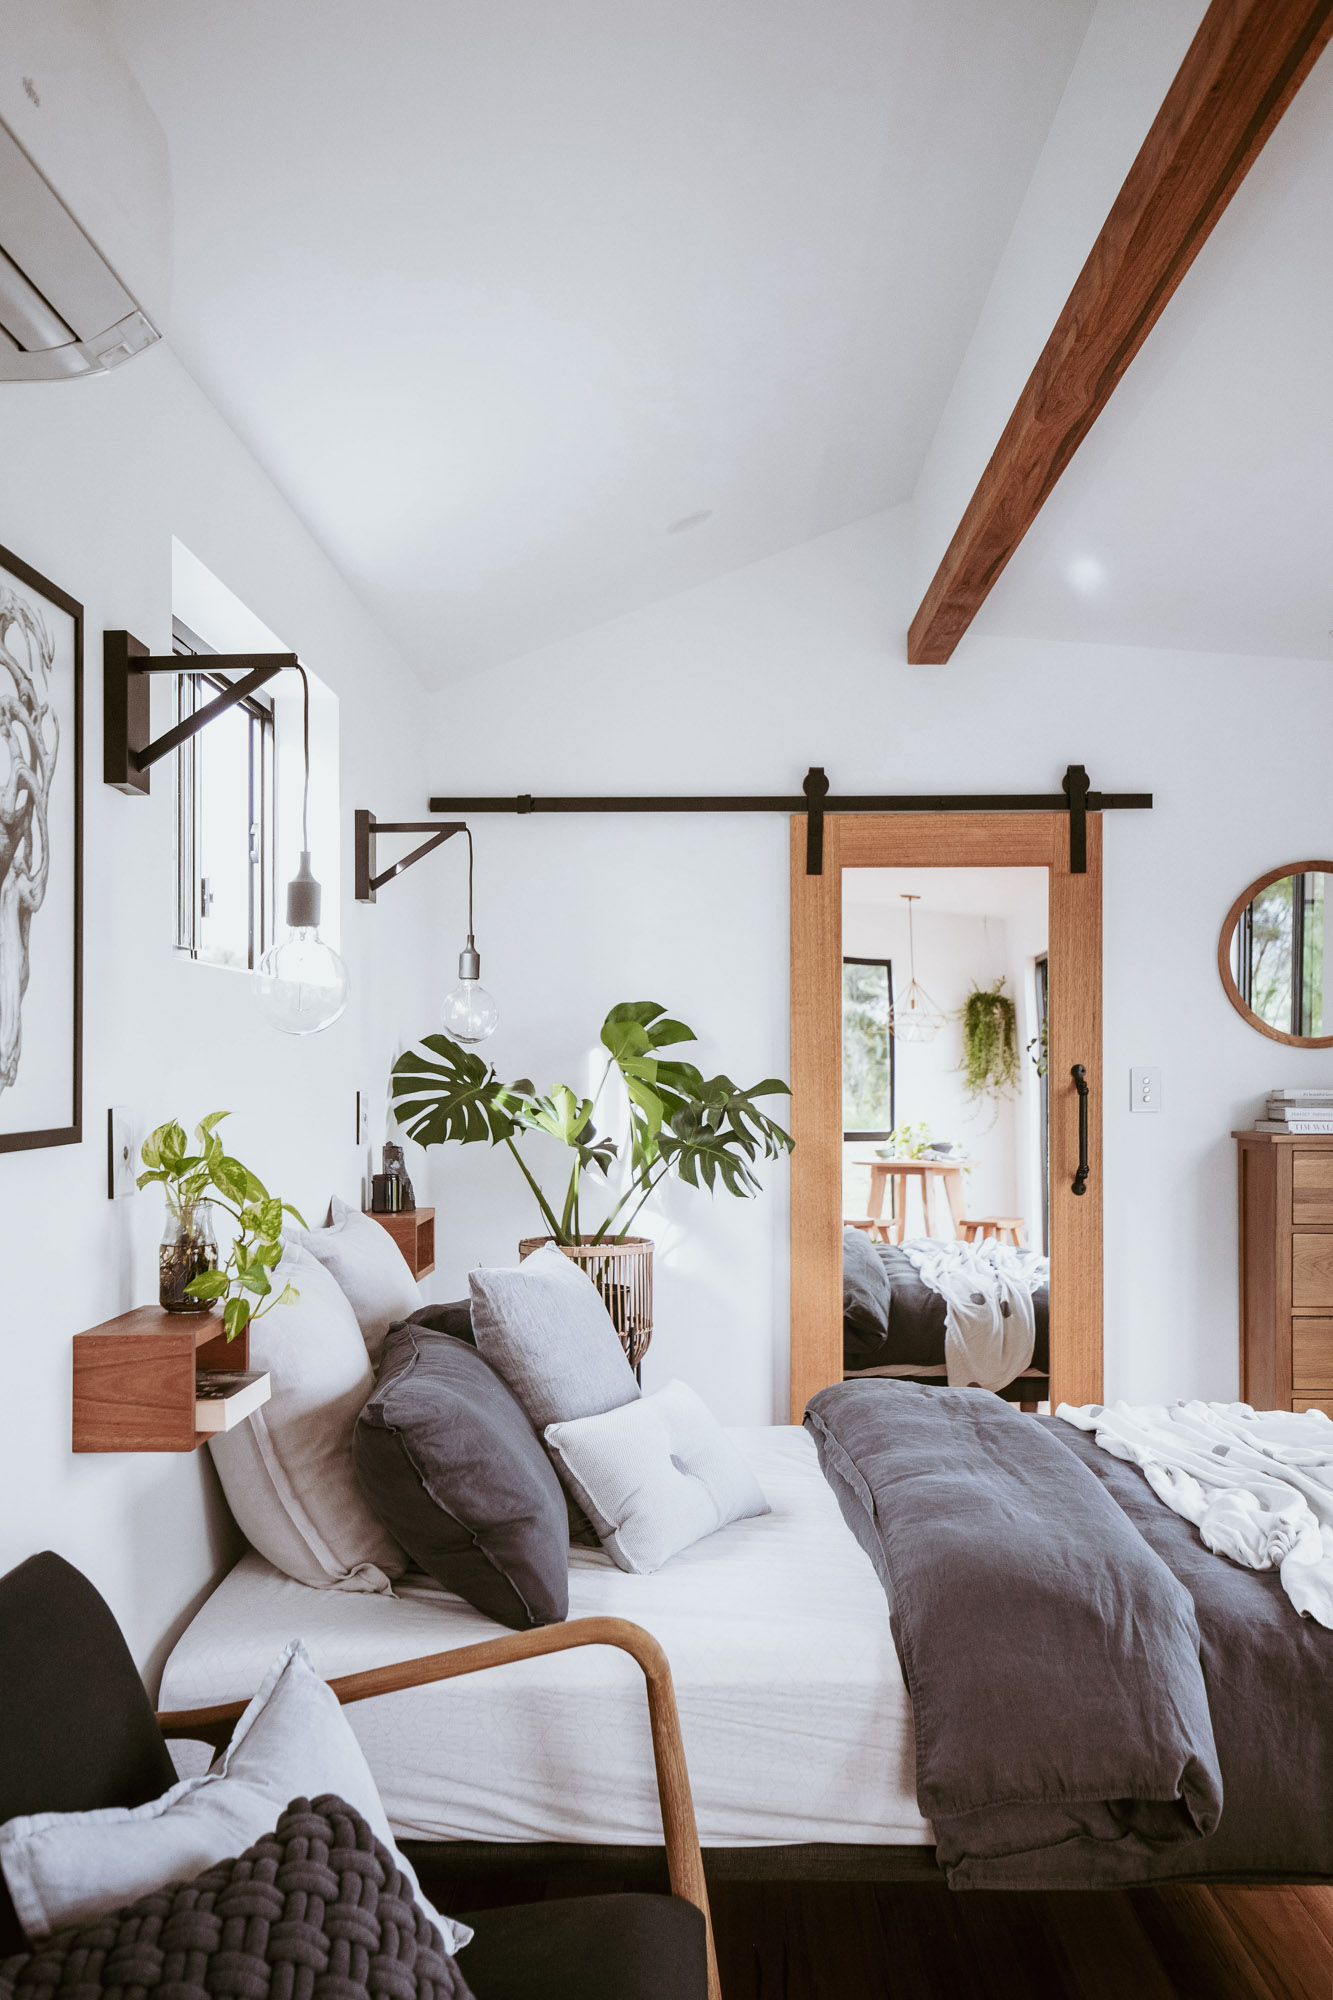 TinyAbodes_Tiny_House _Bedroom-11.jpg